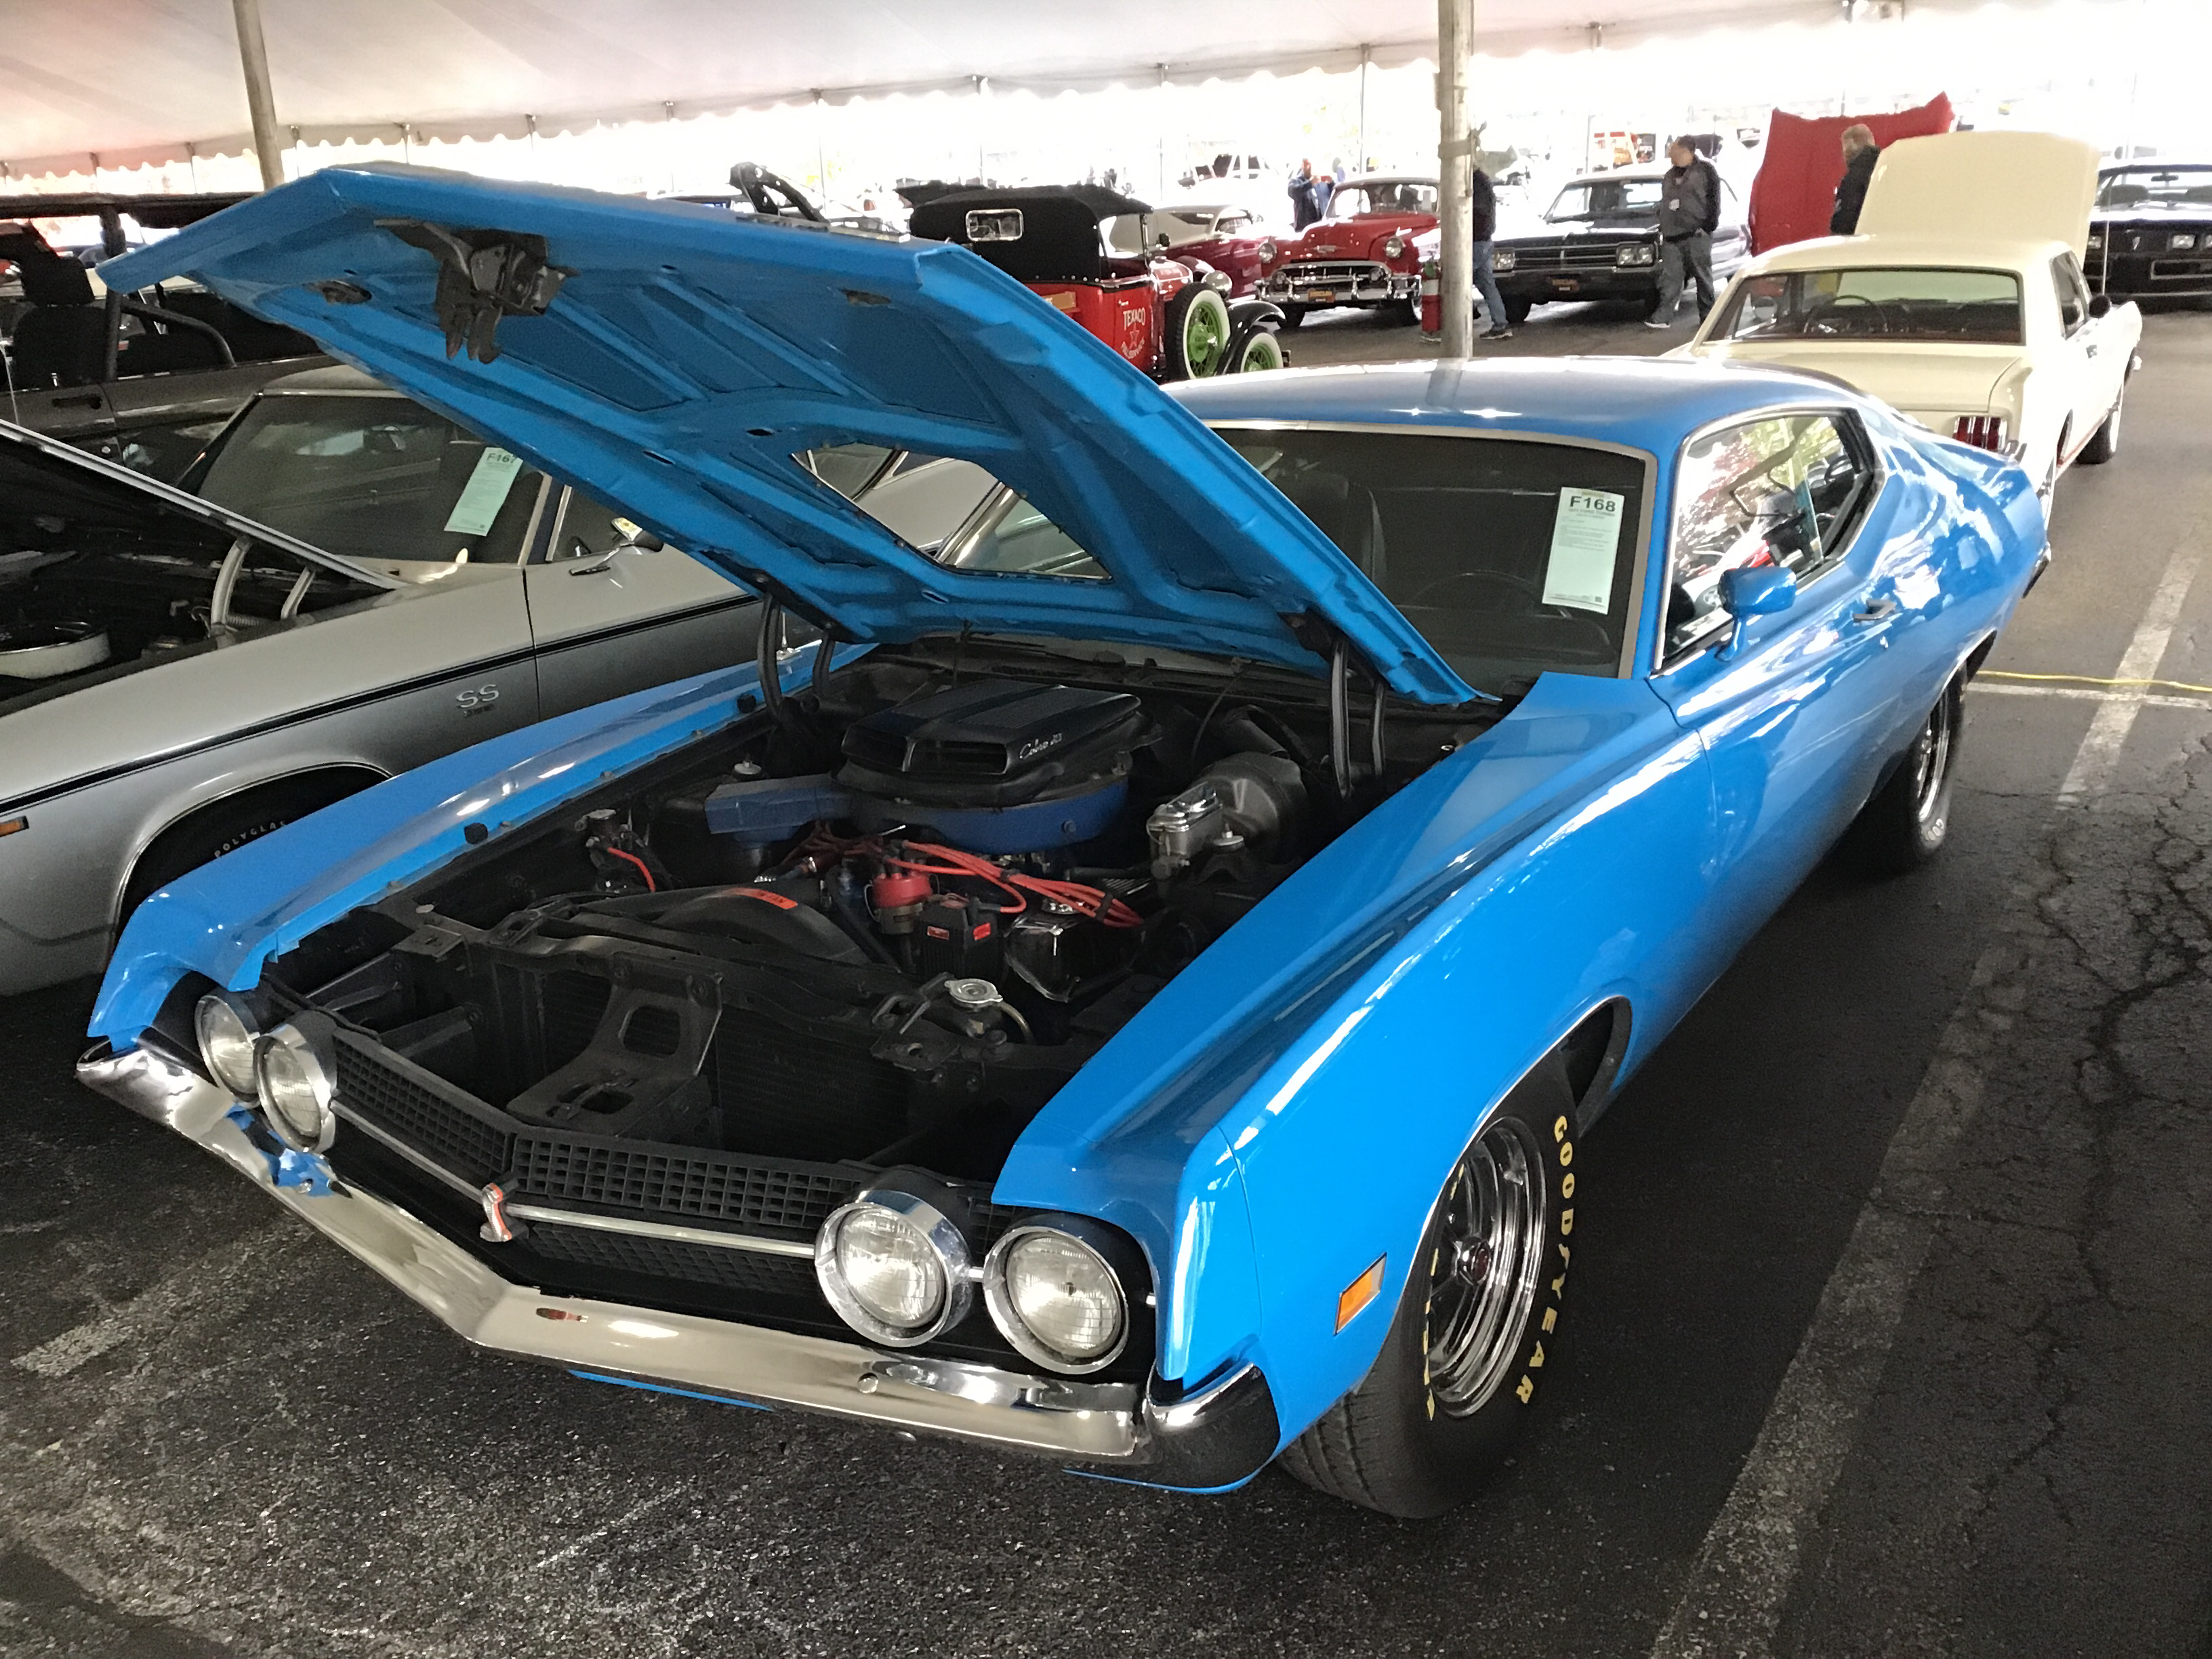 1971 Ford Torino Values Hagerty Valuation Tool 1970 Gt Fastback Cobra Sportsroof 8 Cyl 429cid 375hp 4bbl